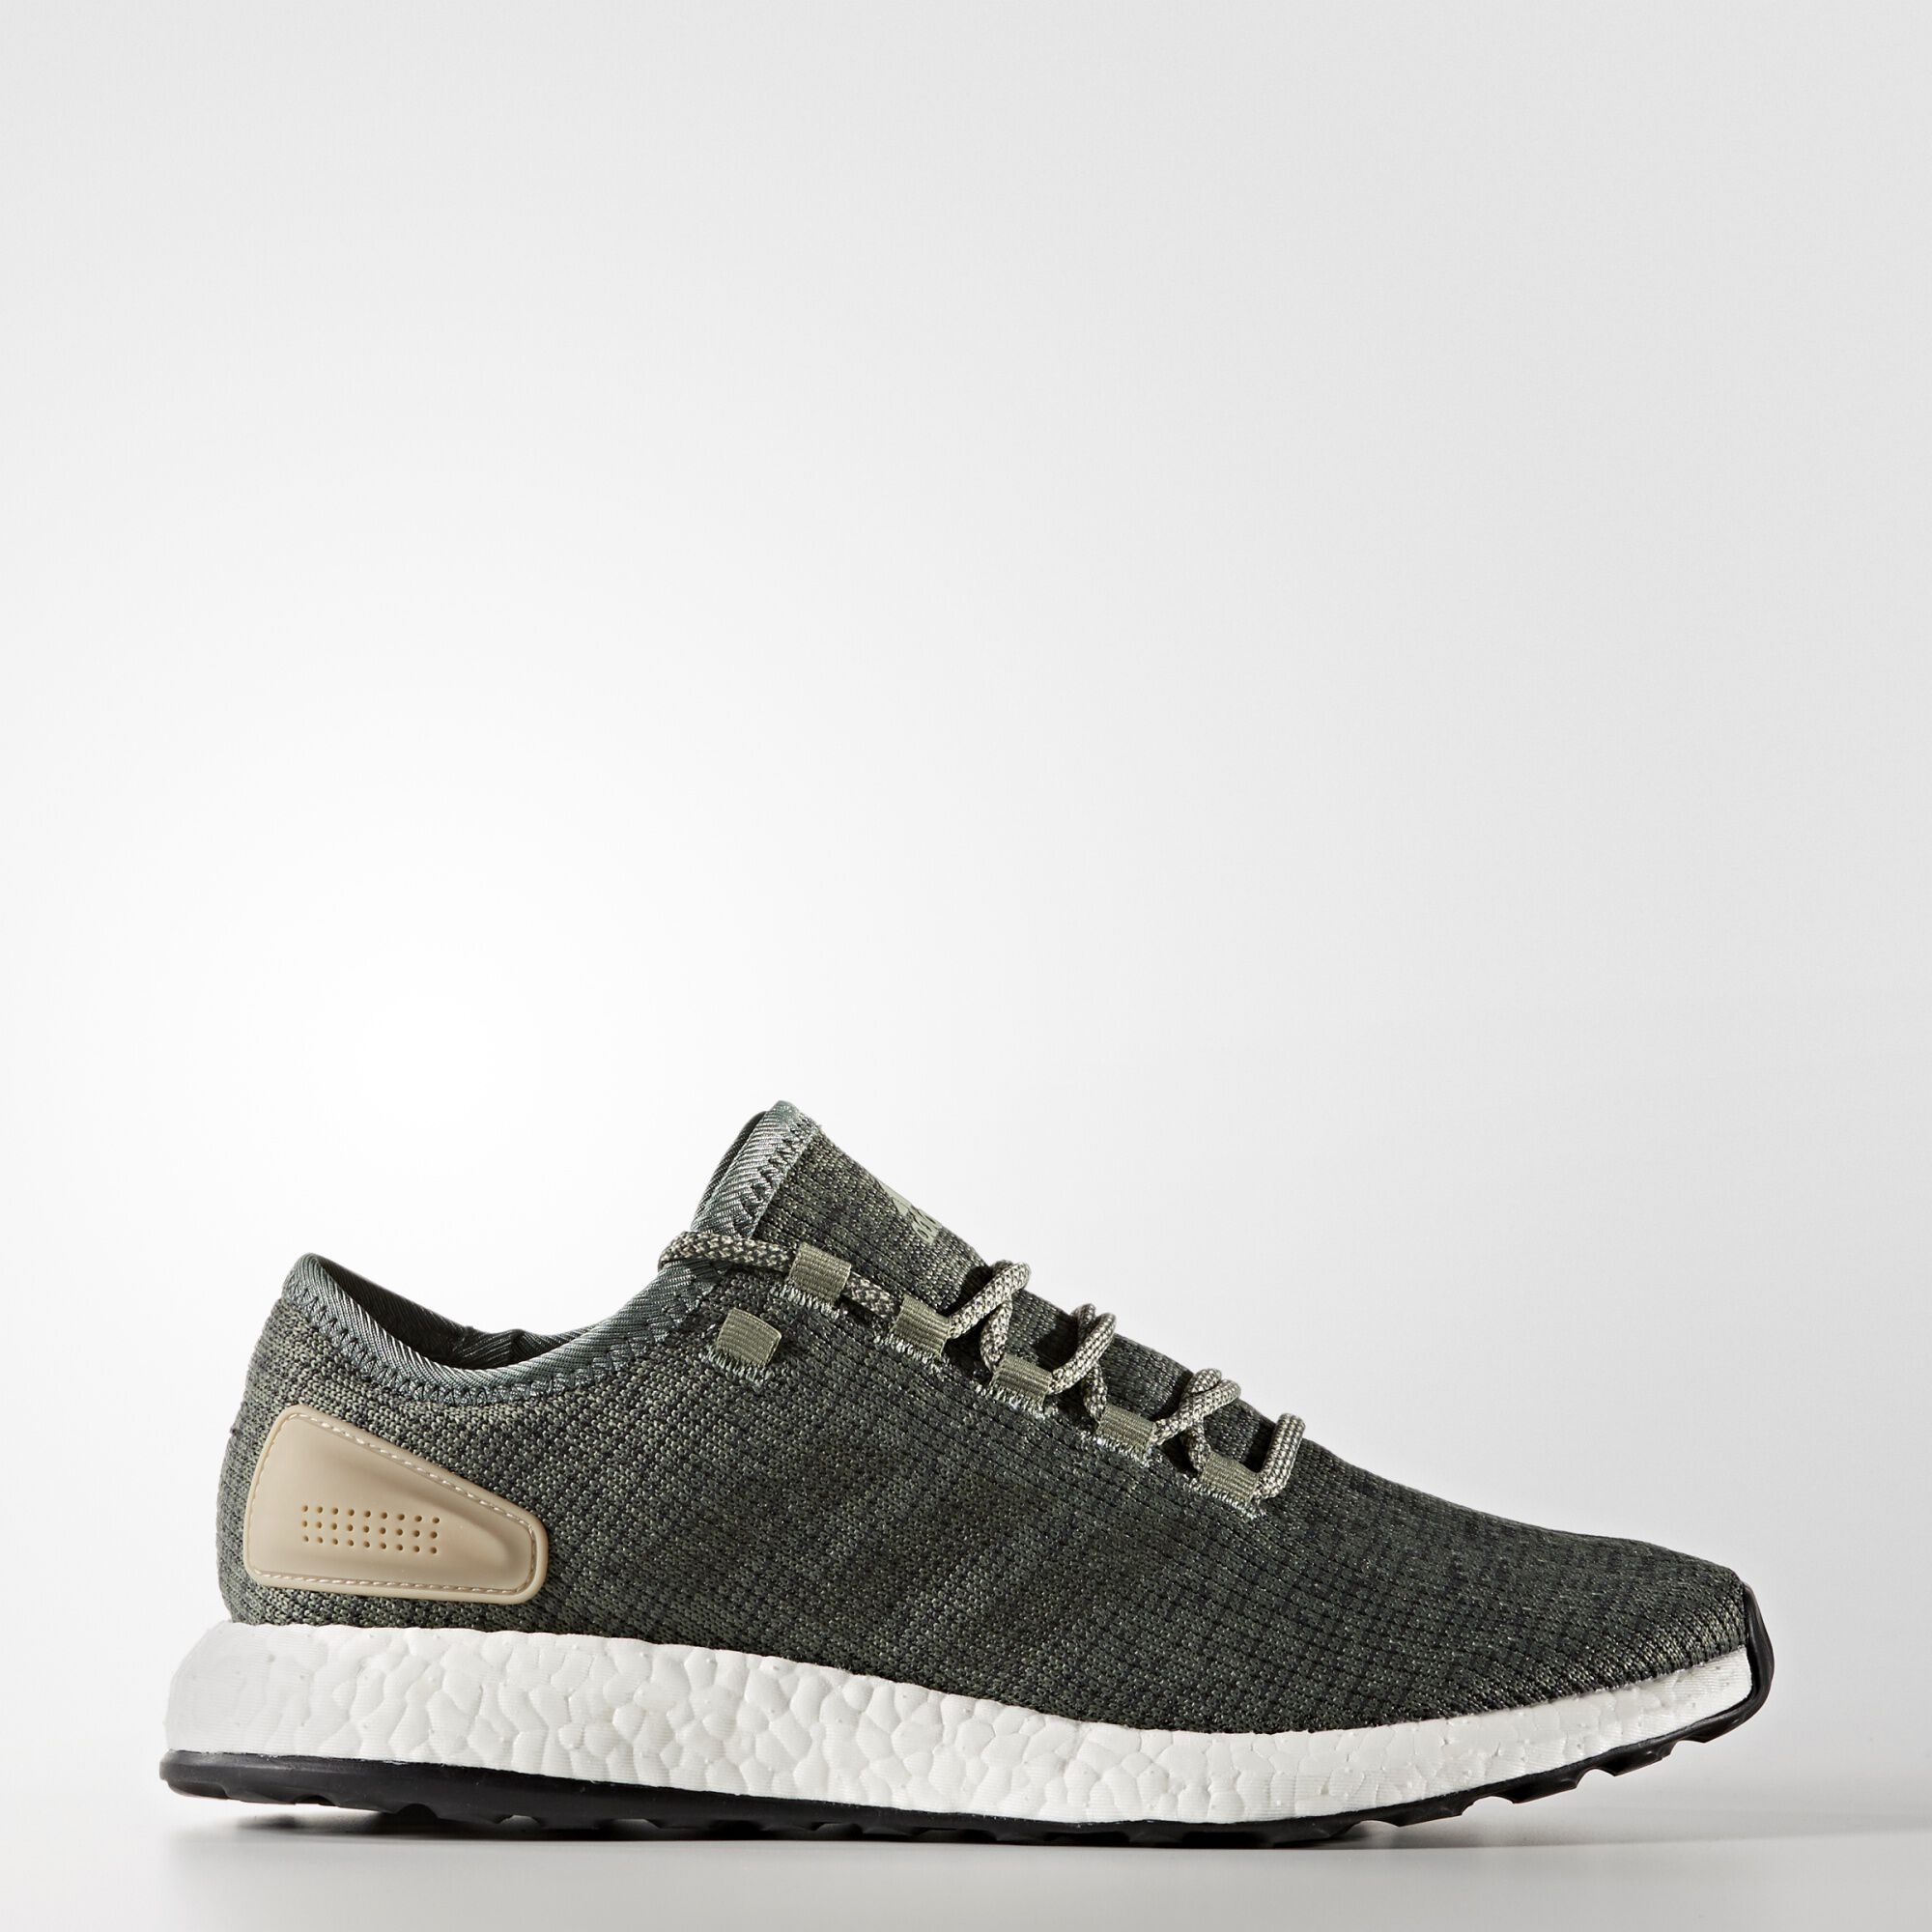 ADIDAS PURE BOOST Shoes Cheap